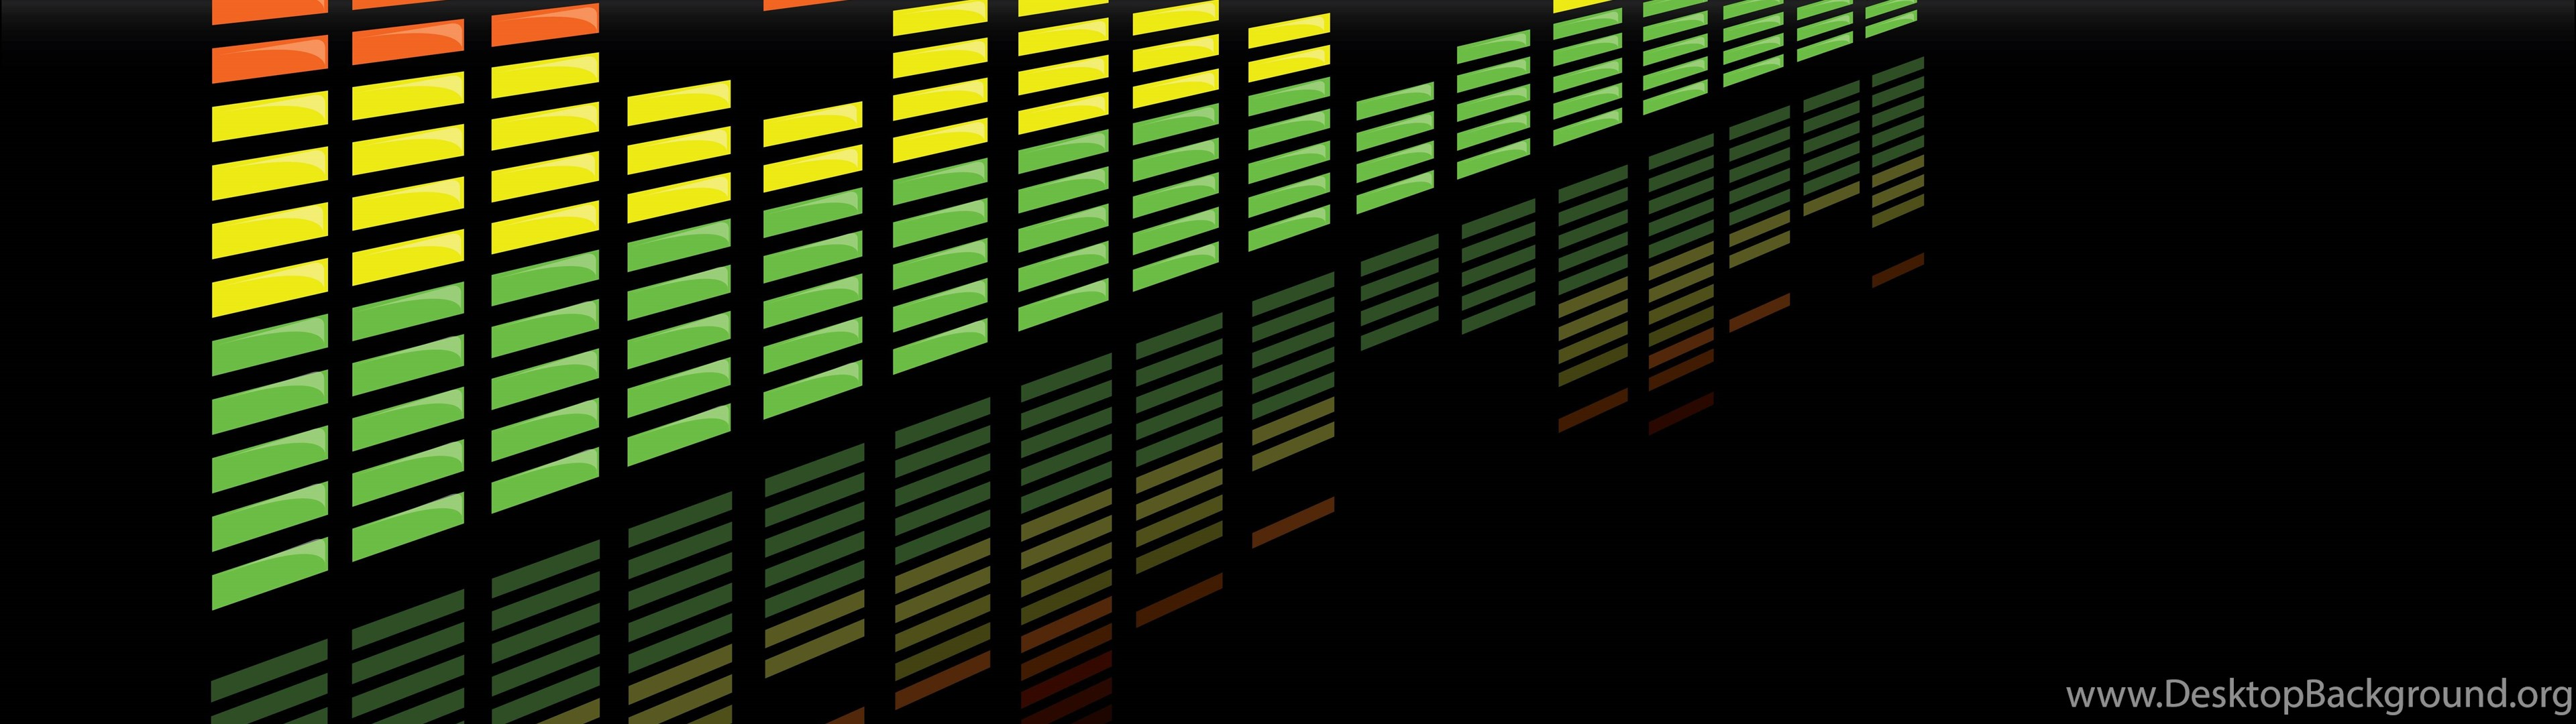 free backgrounds music for slideshows download hd wallpapers